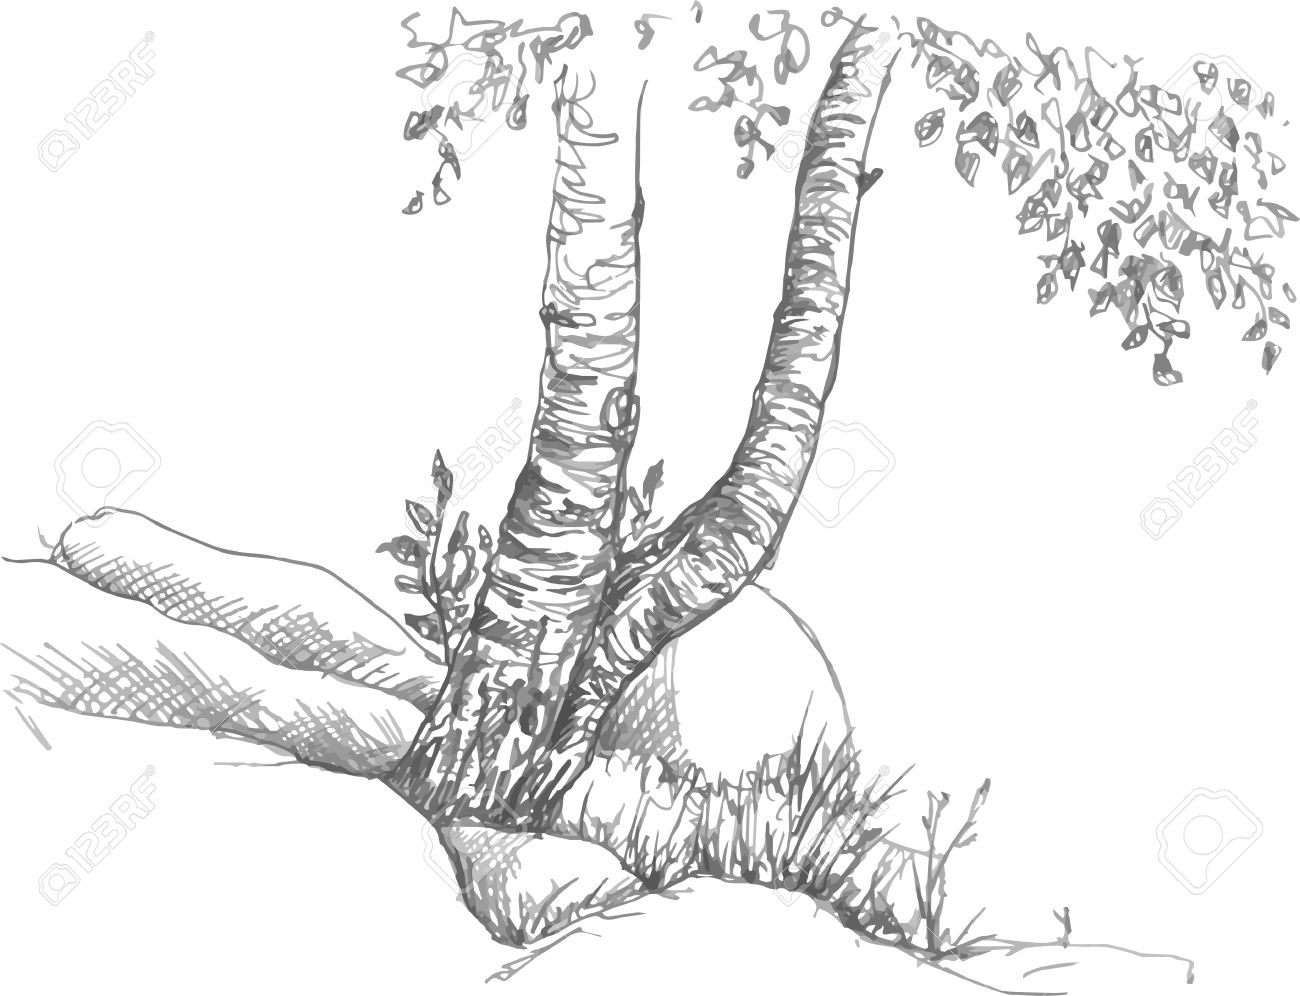 Birch trunks and rocks drawing by pencil sketch of wild nature forest sketch